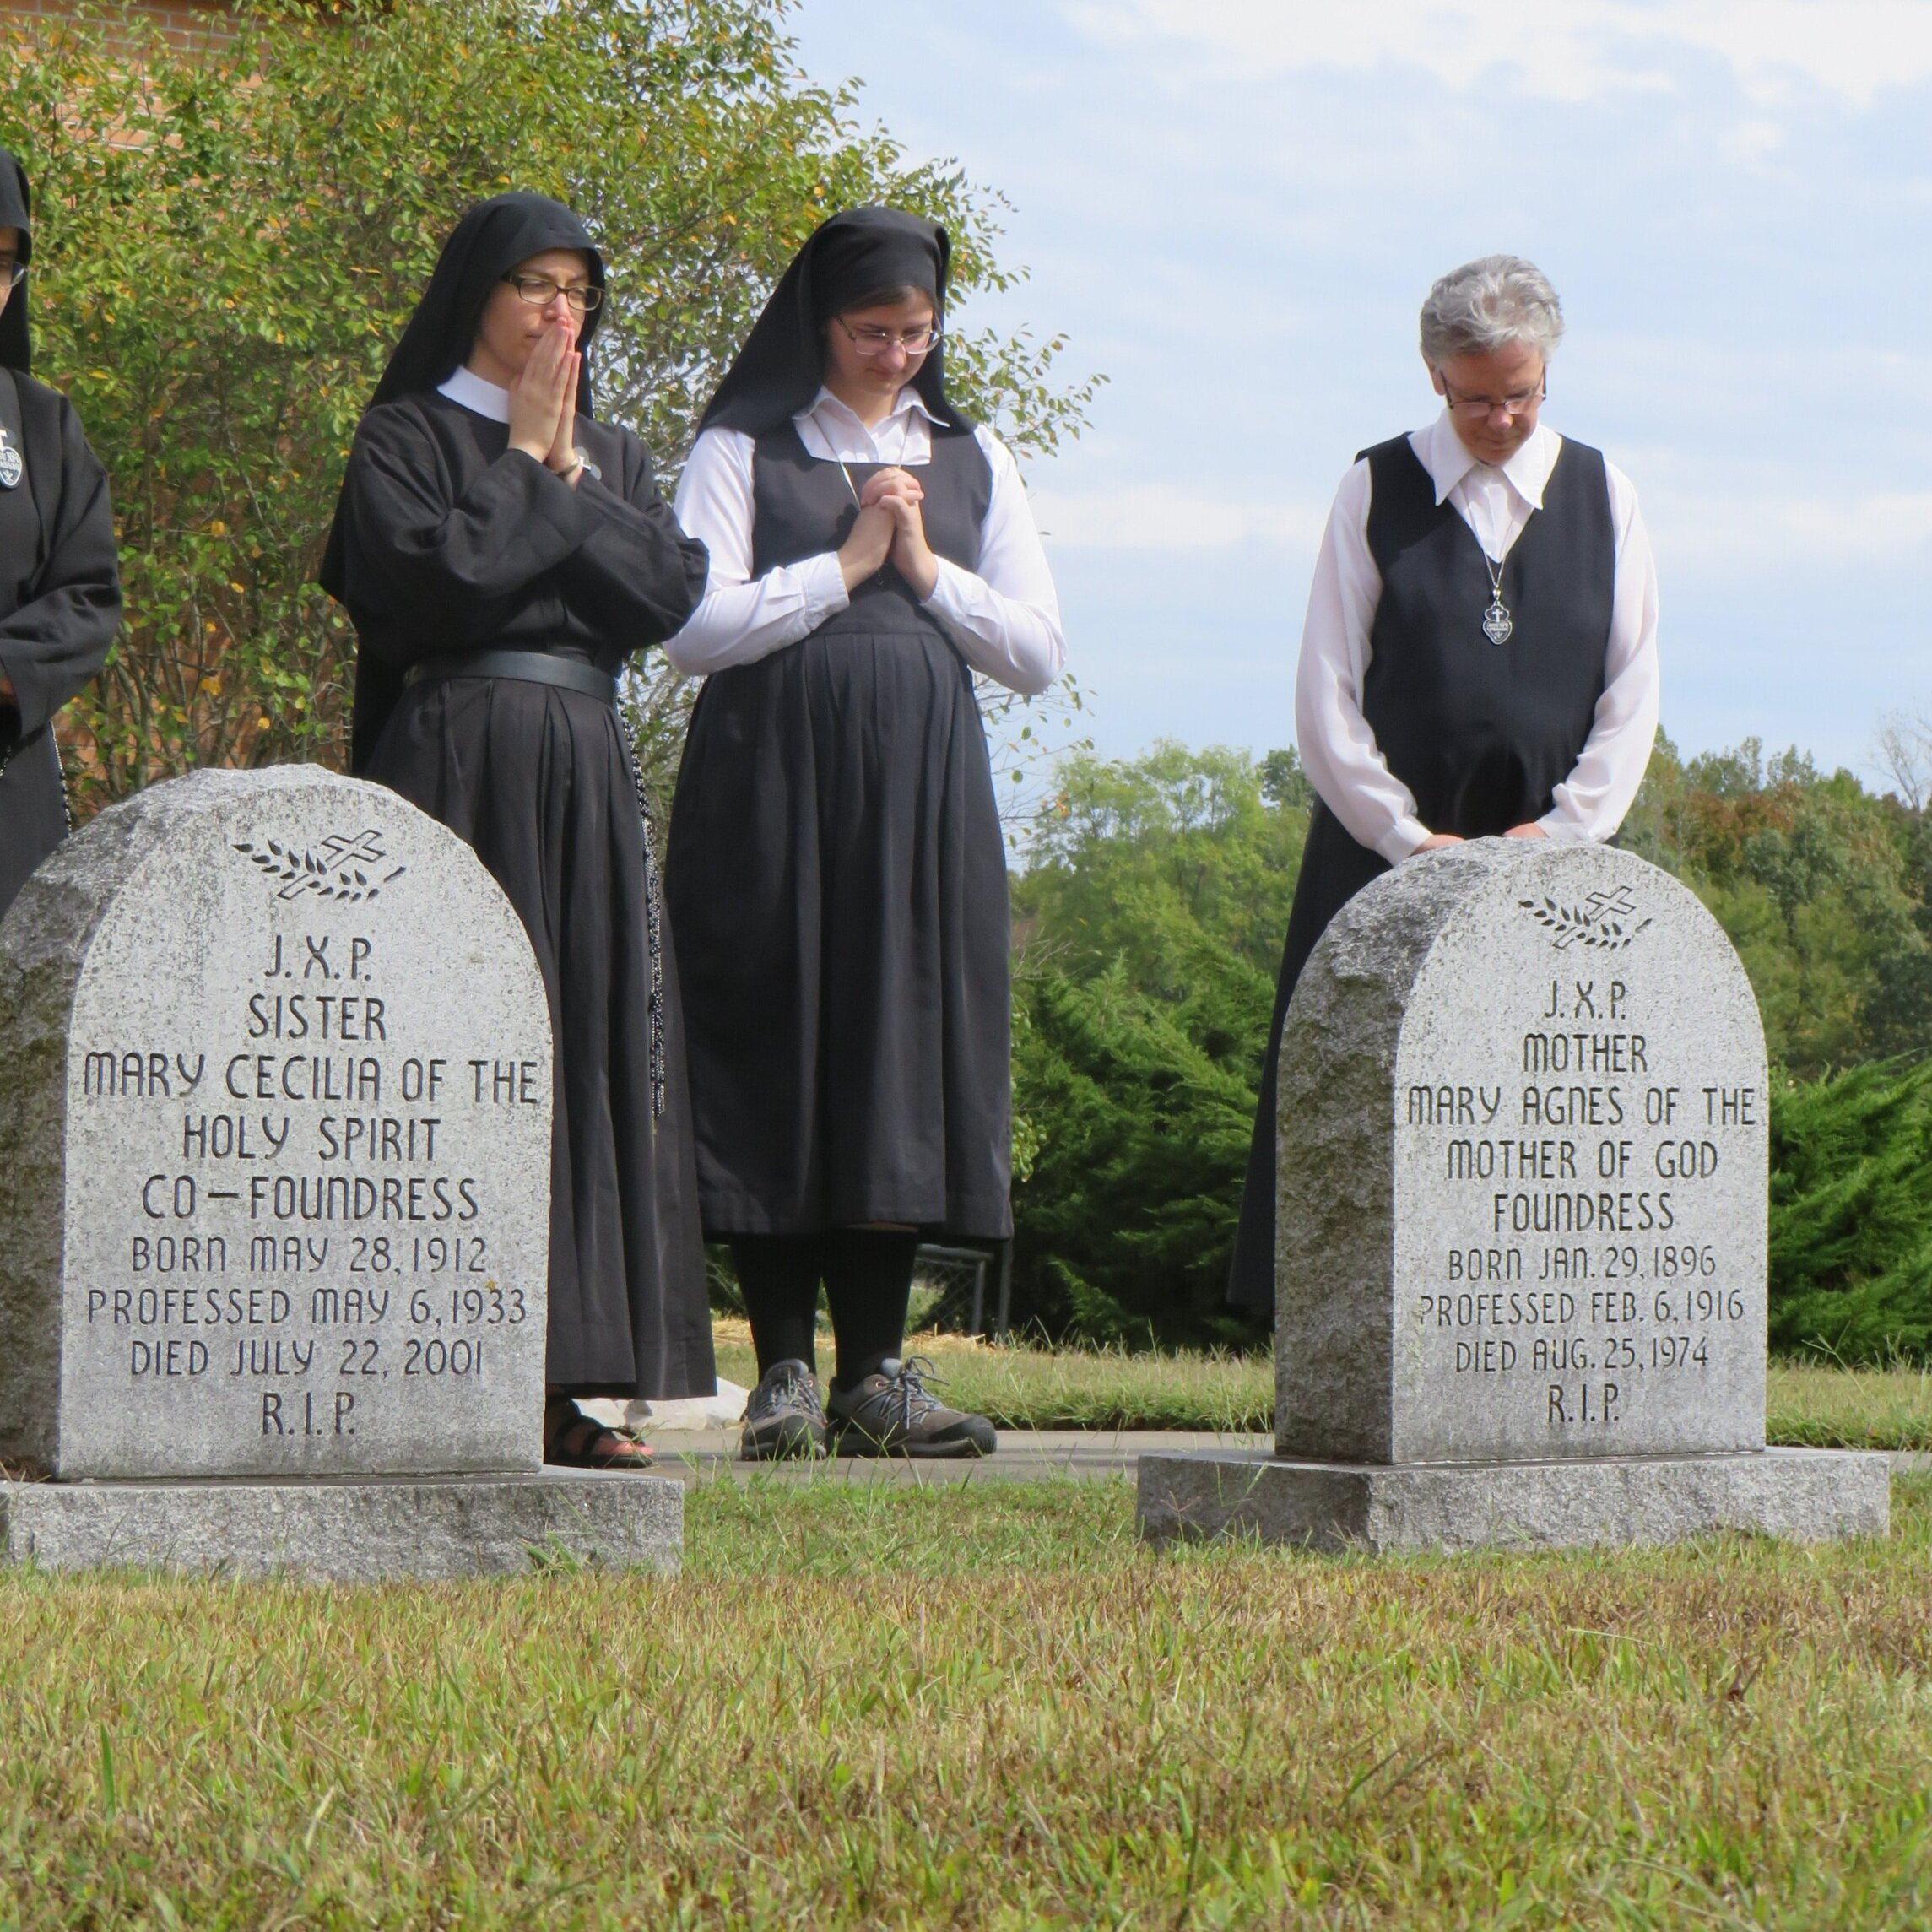 Sr. Maria Faustina, postulant Theresa, and Christie at the graves of our foundresses.